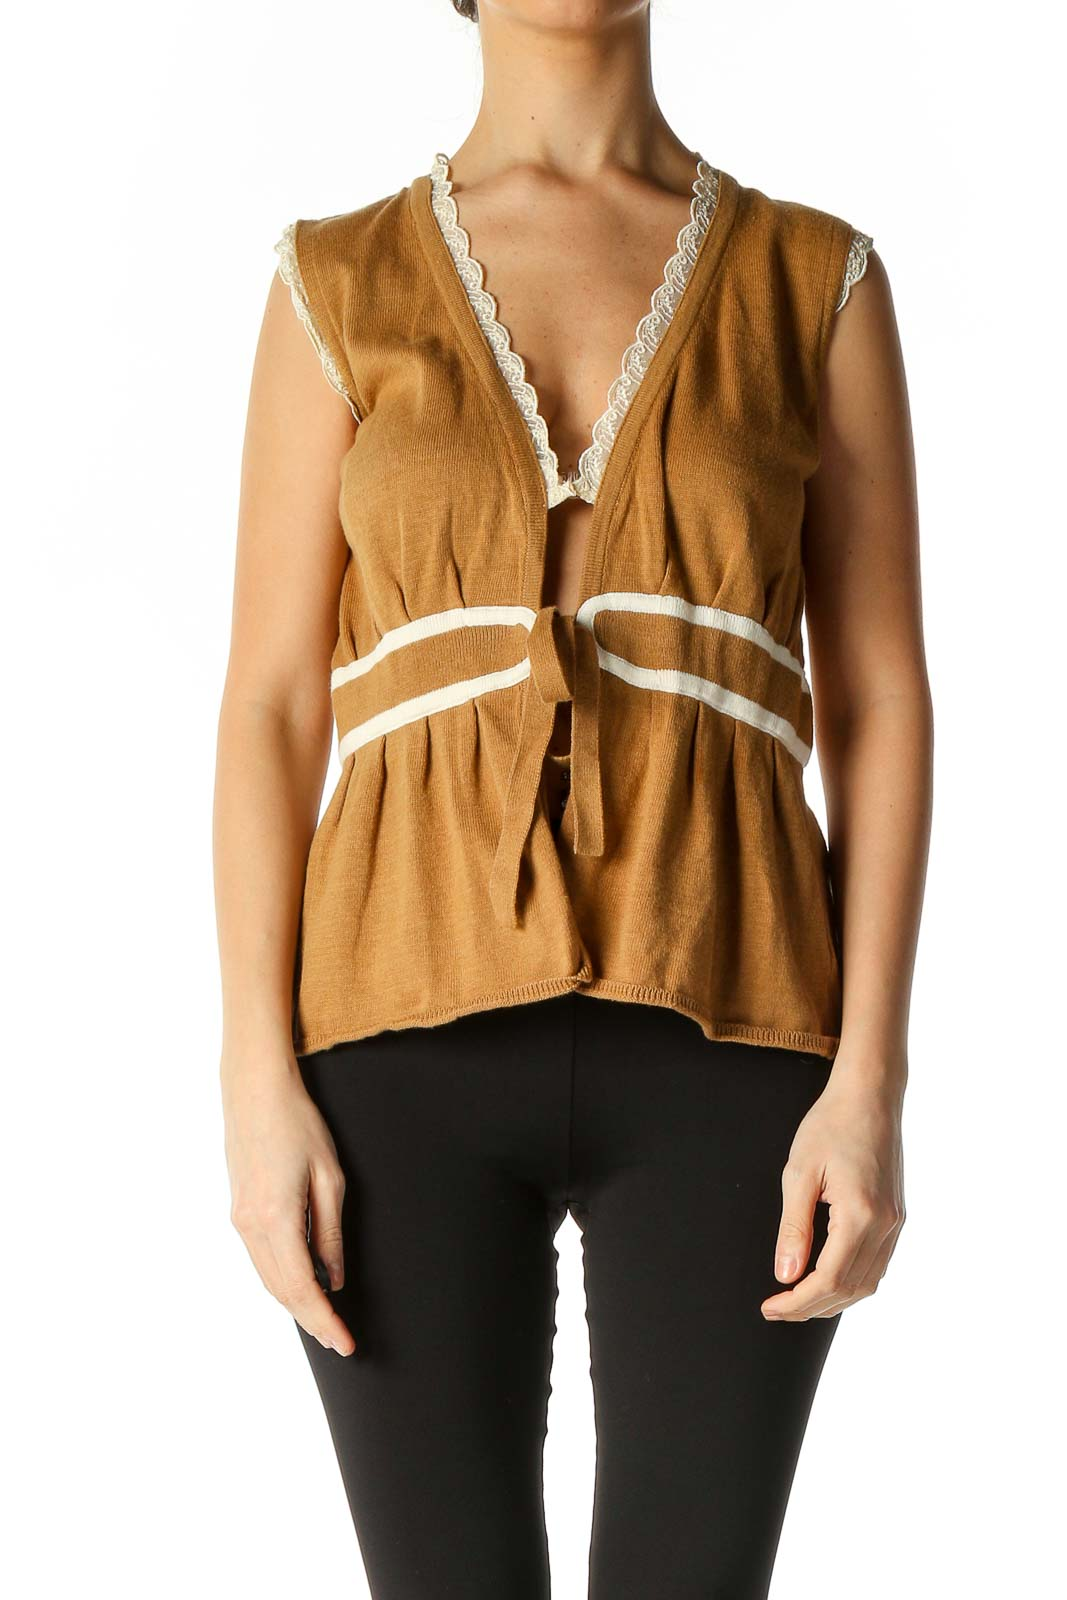 Brown Solid Retro Blouse Front